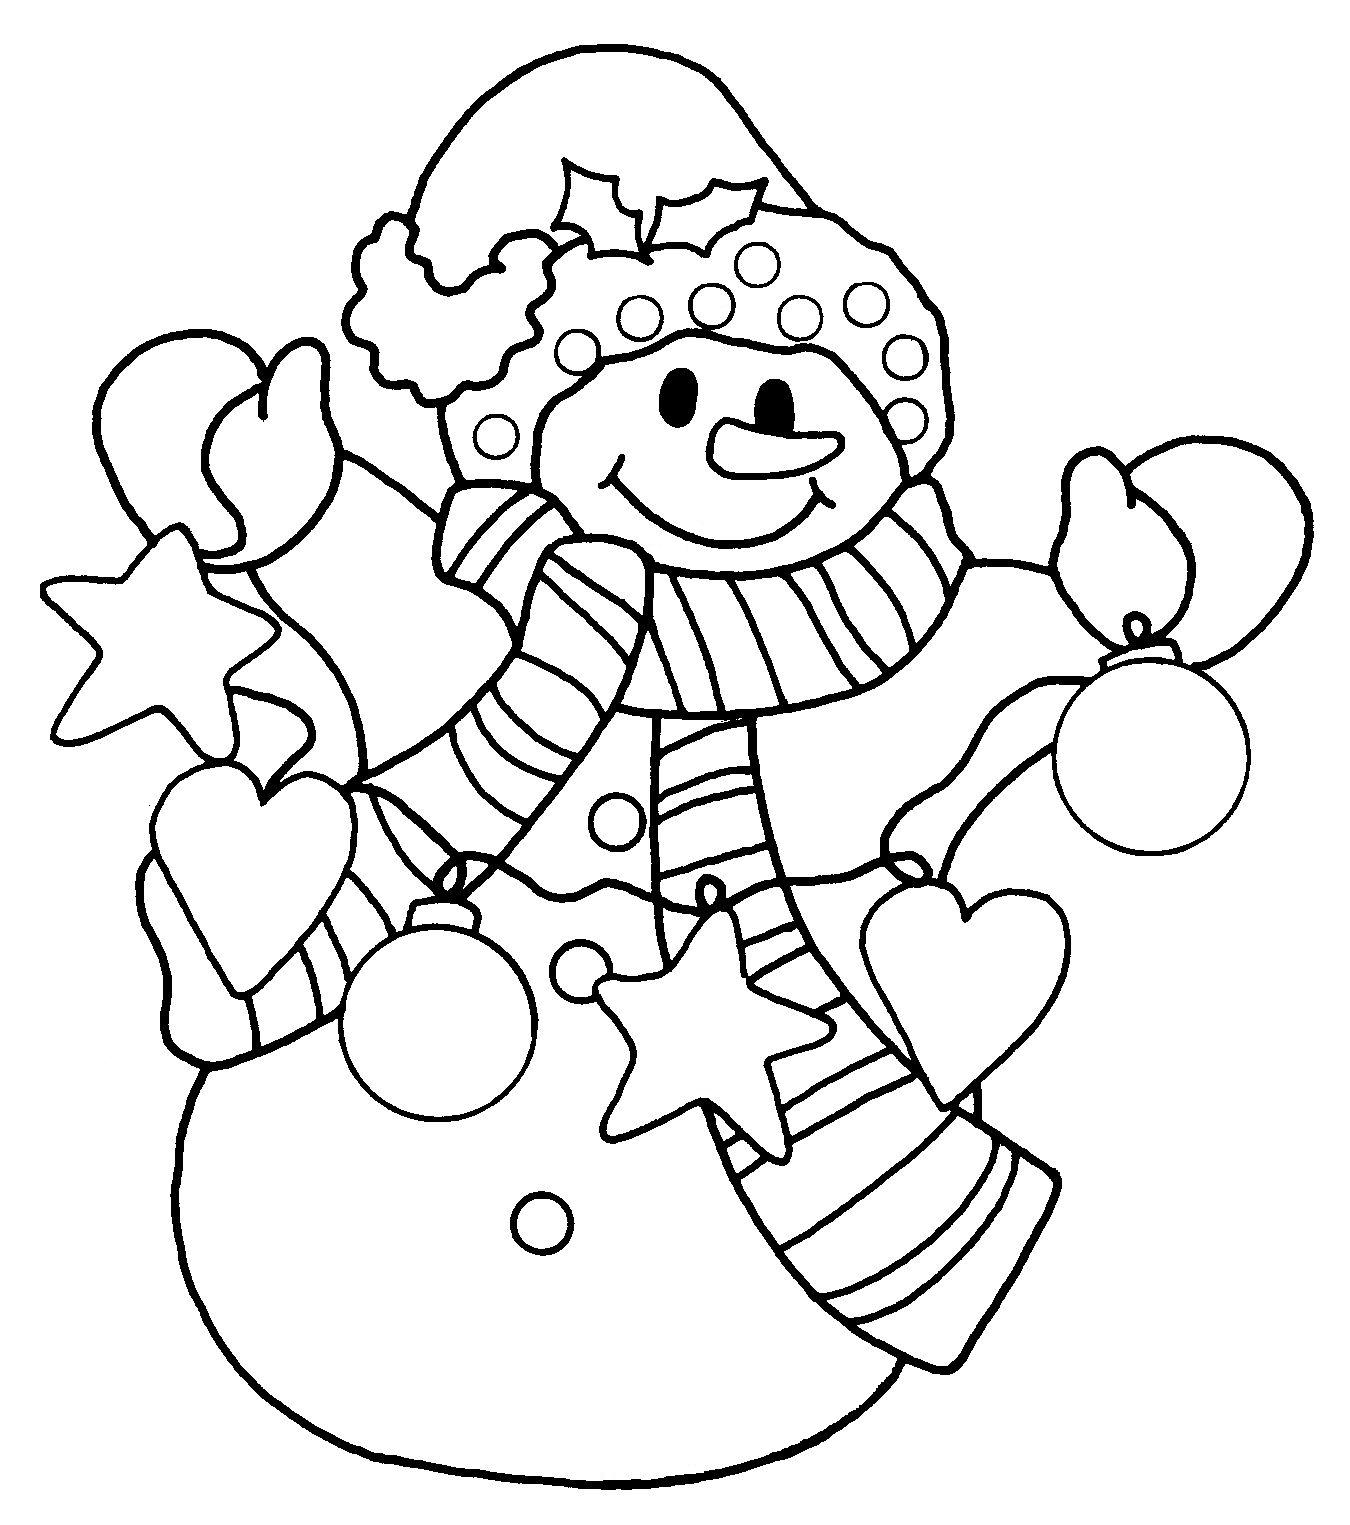 snowman coloring pages - photo#3